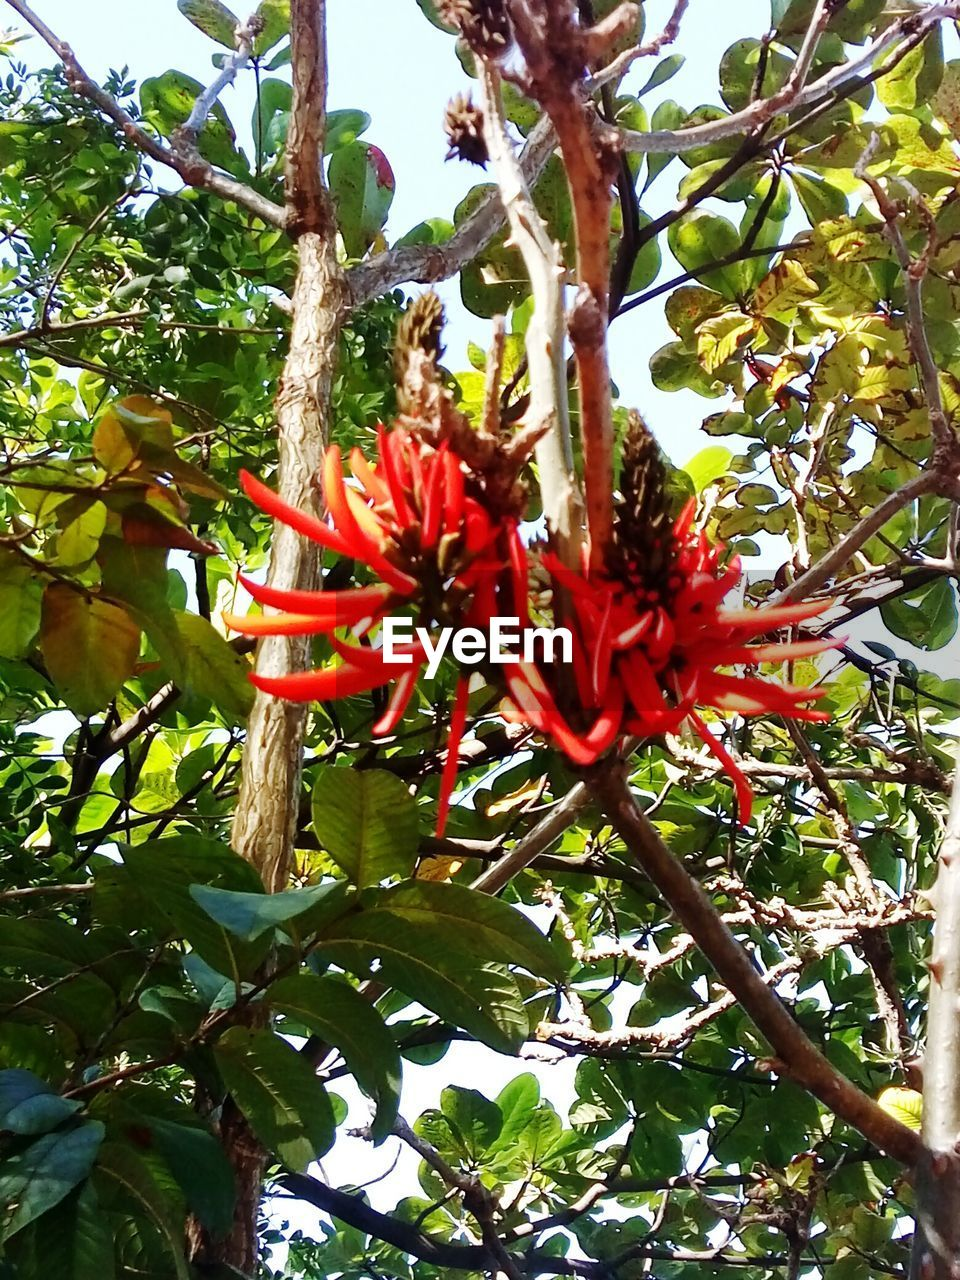 growth, flower, nature, beauty in nature, tree, red, low angle view, day, petal, fragility, no people, blossom, green color, freshness, branch, outdoors, plant, leaf, flower head, blooming, close-up